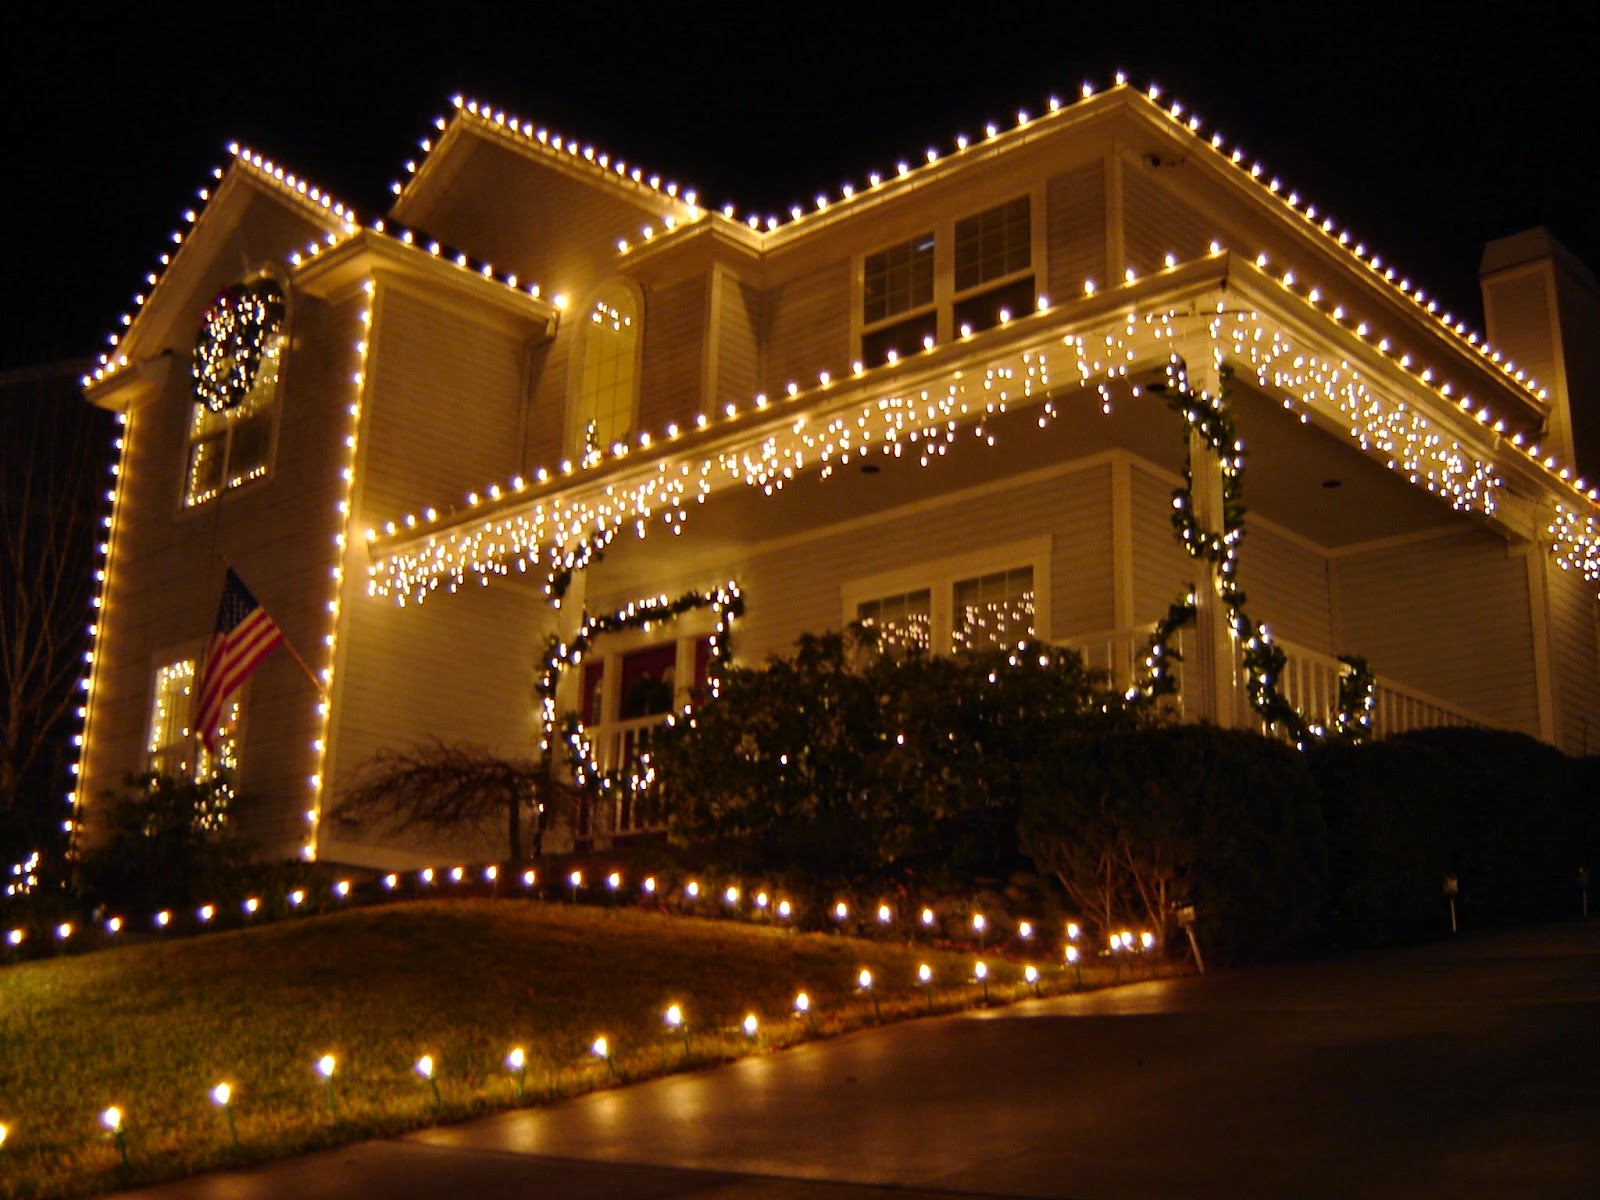 easy outdoor christmas lights photo 4 - Homemade Outdoor Christmas Light Decorations